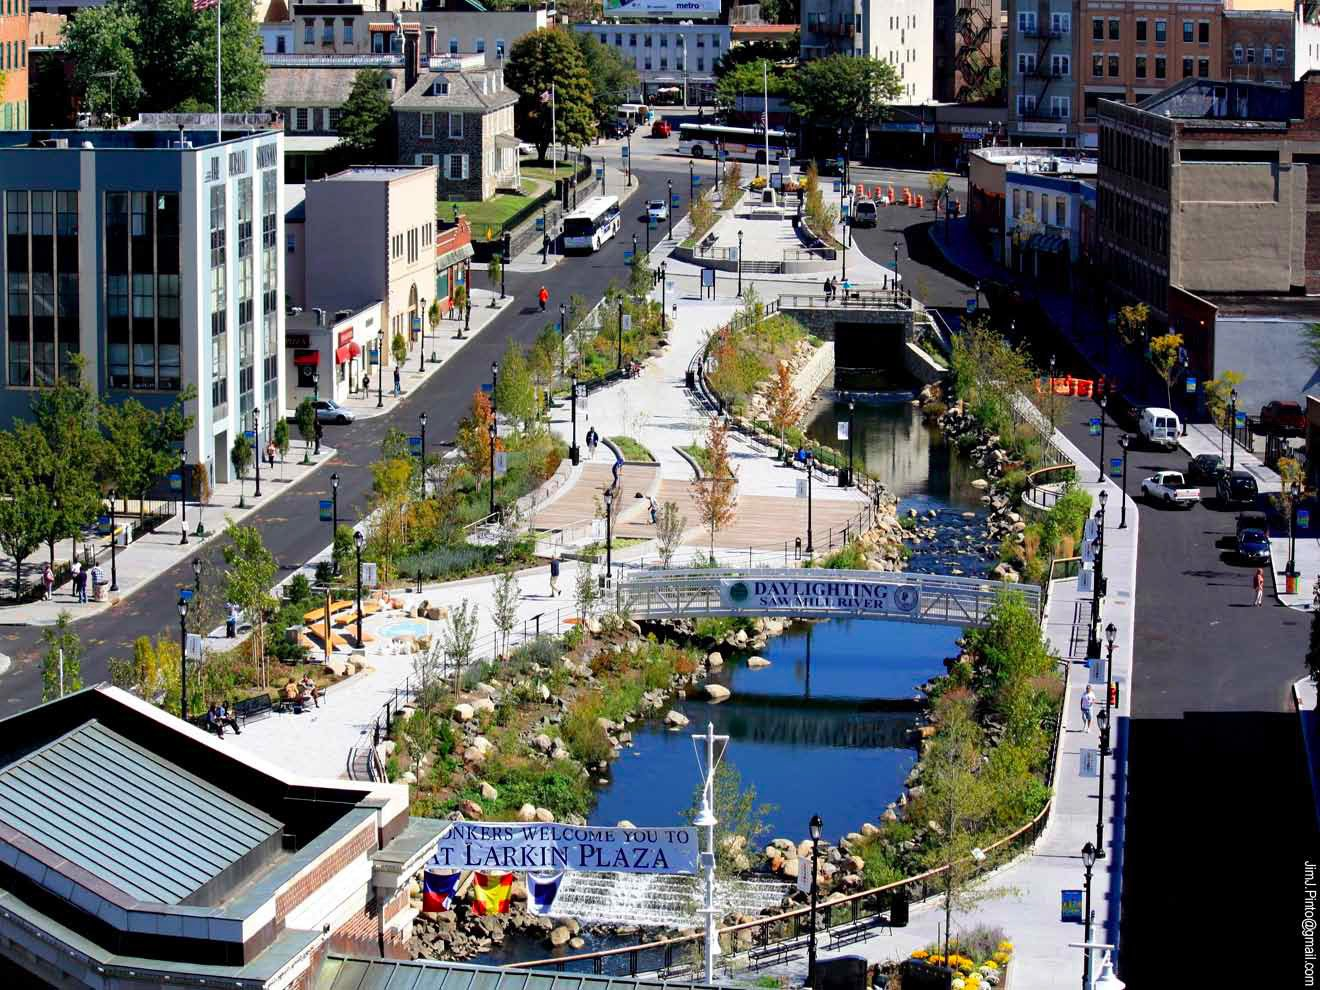 After 80 years spent under public parking lots, the Saw Mill River was resurrected by Saratoga Associates. Winding through the city, the once-forgotten river will now anchor the lively Van der Donck Park. Photo courtesy of Saratoga Associates.  New York Landscape Architects Design Awards by Sara Carpenter